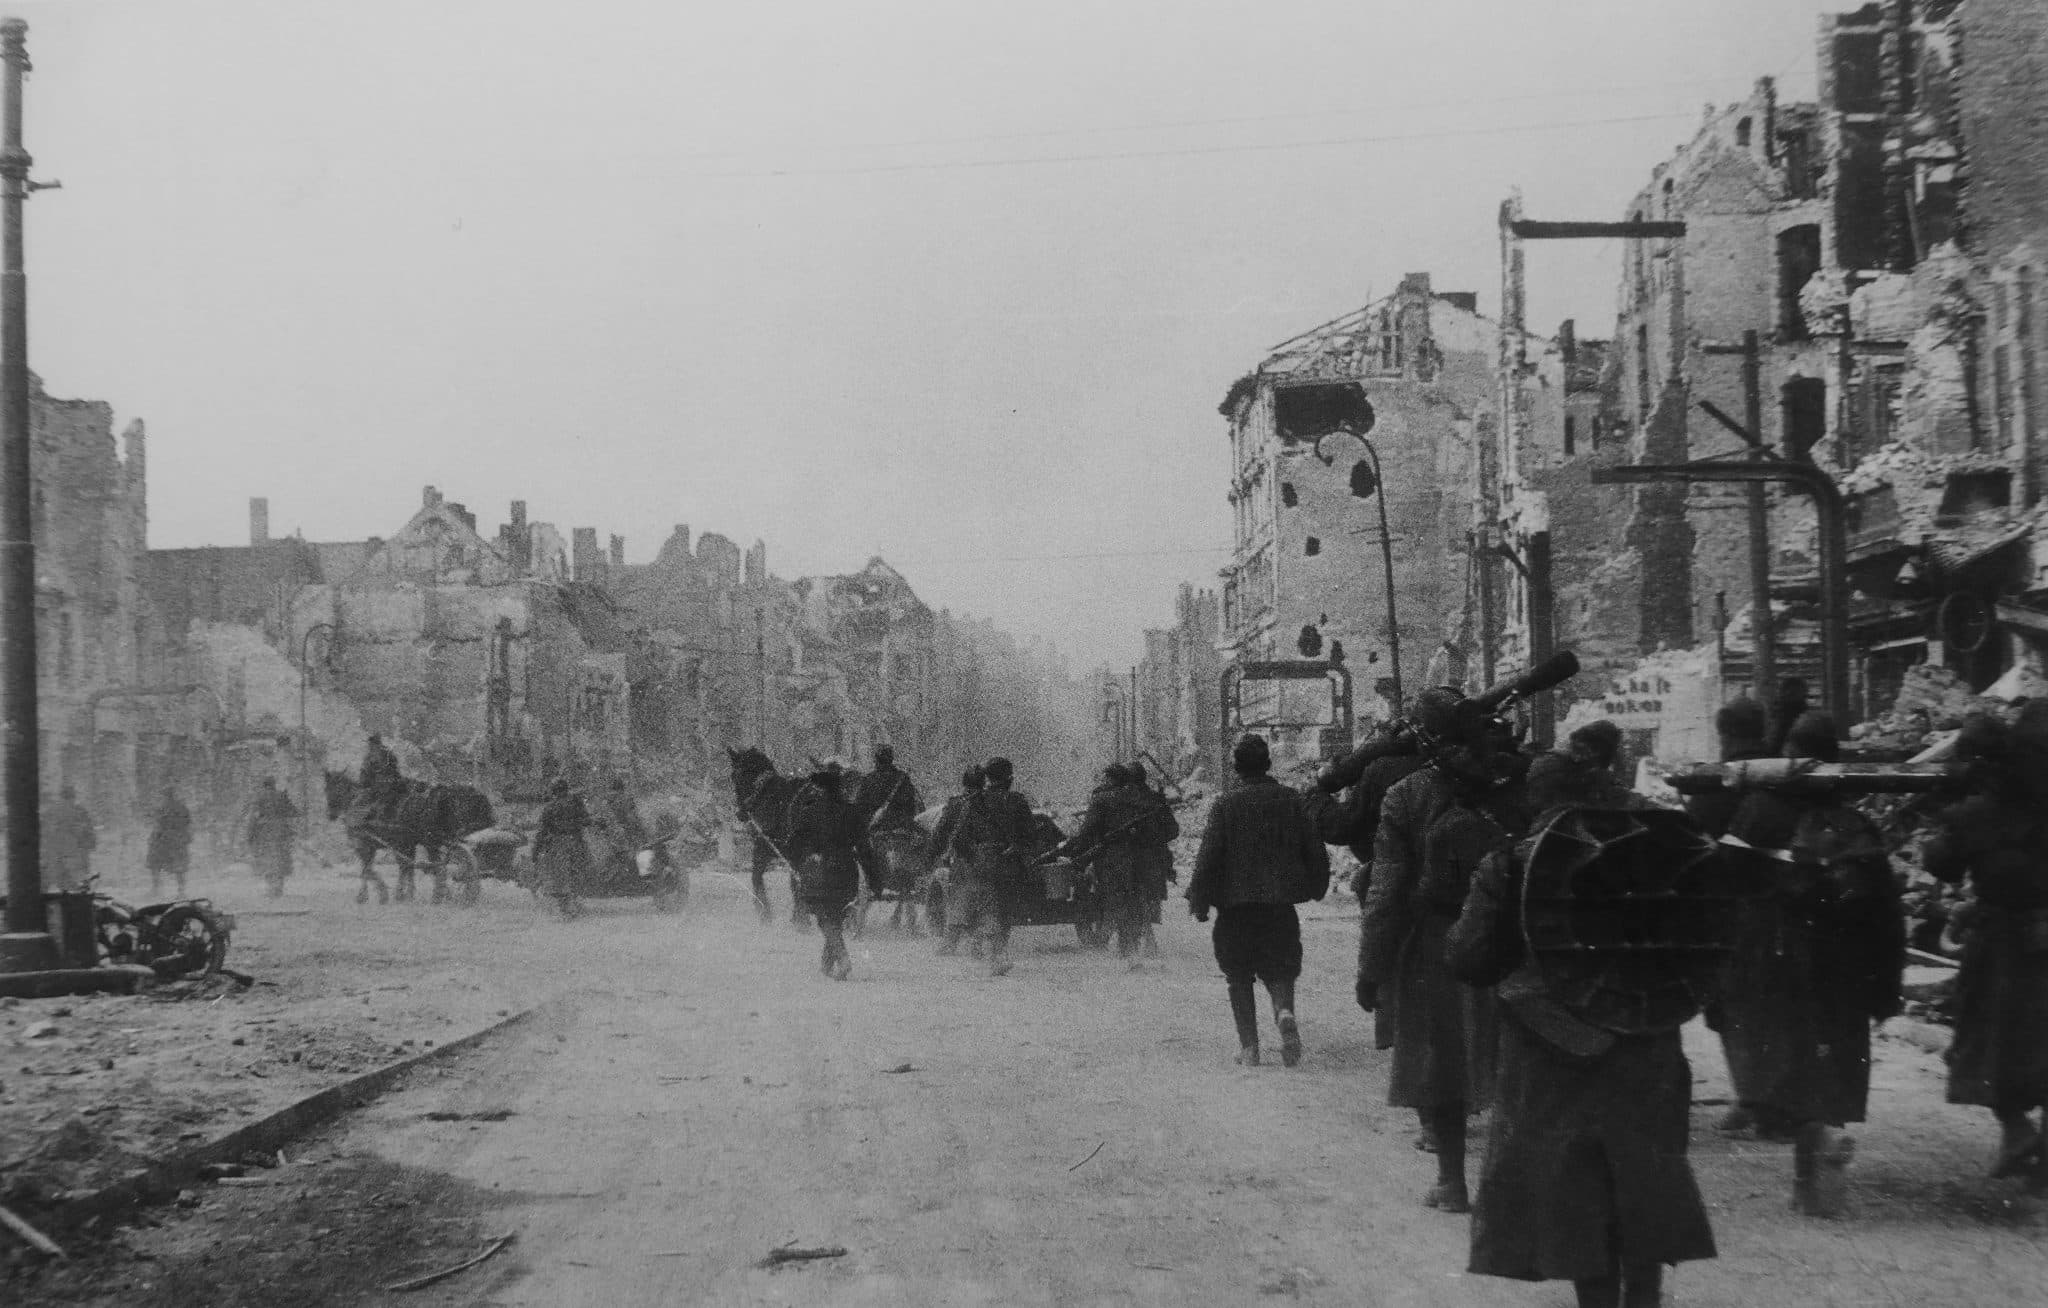 A column of Soviet artillerymen on the march along the Frankfurter Alee in Berlin